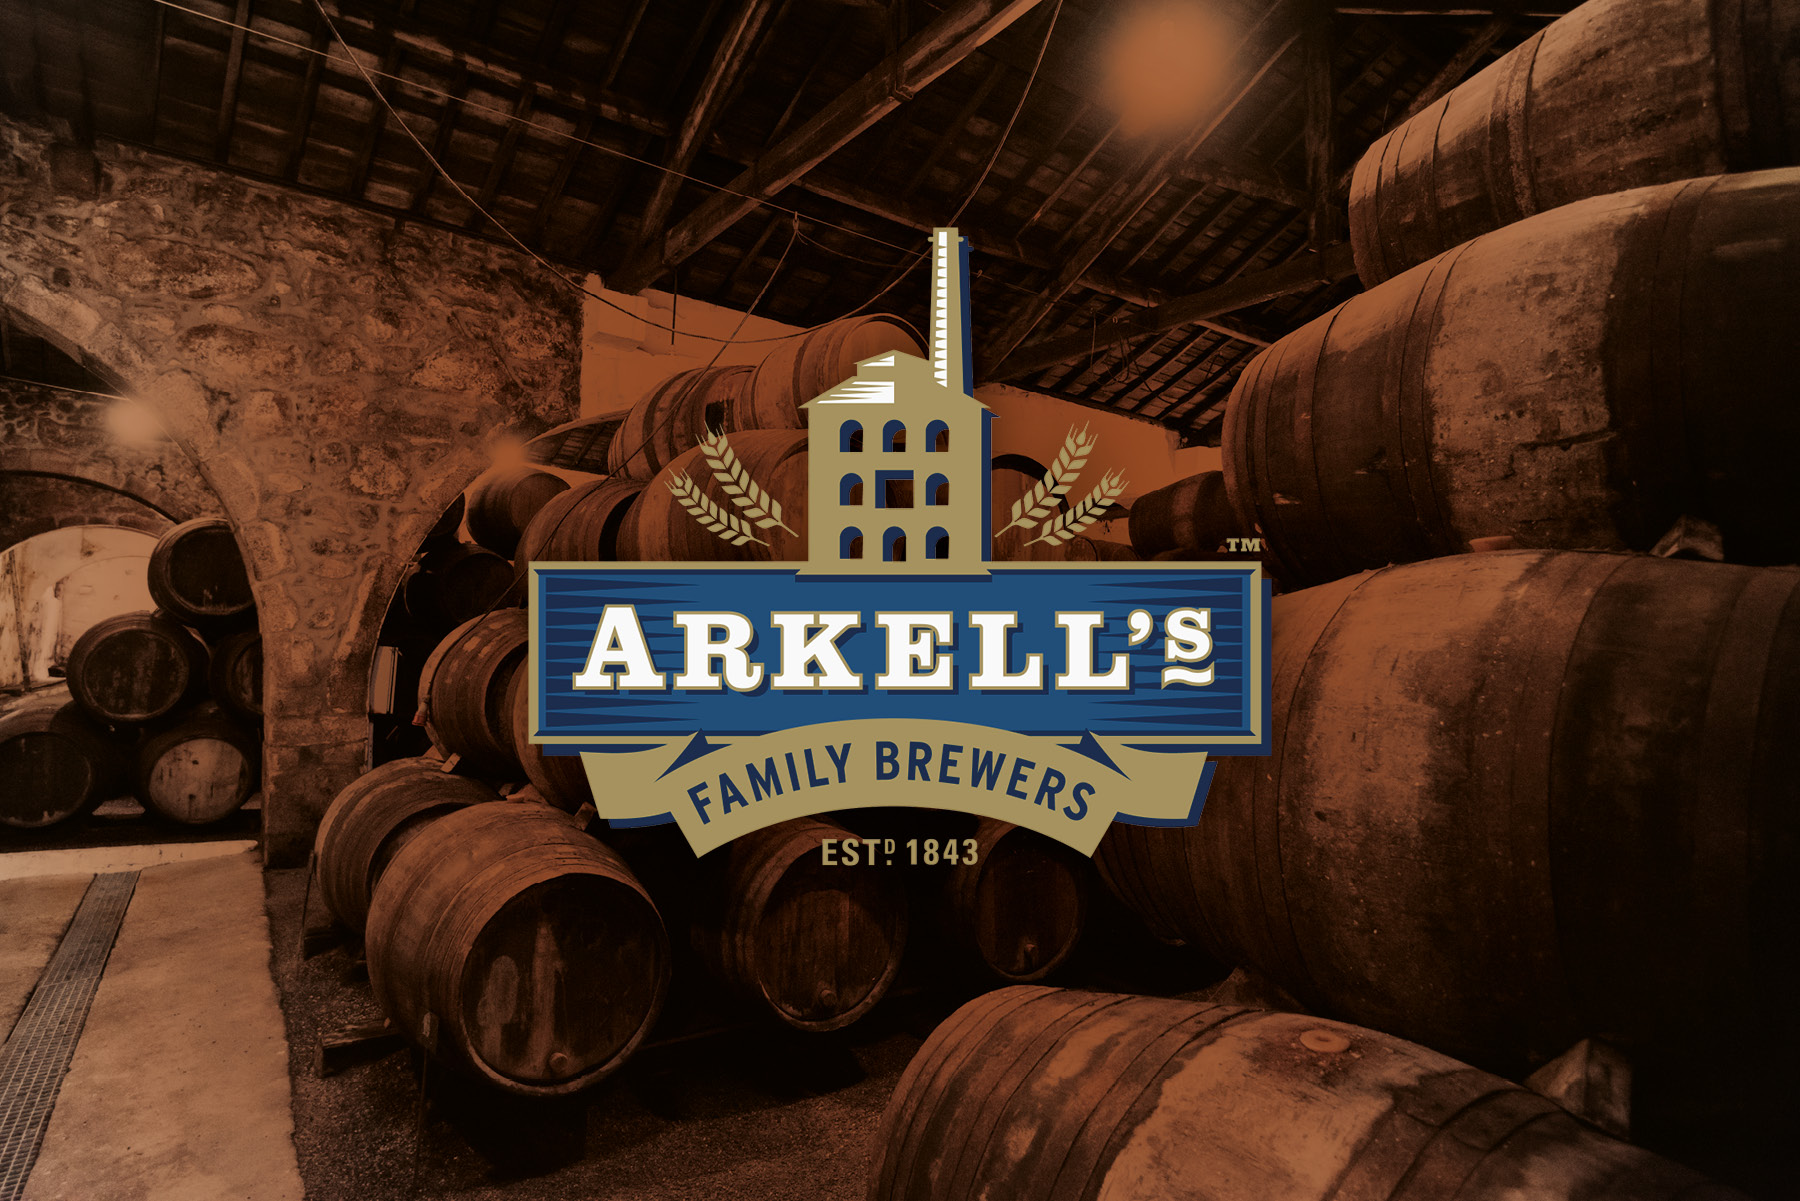 arkell's brewery design page splash image